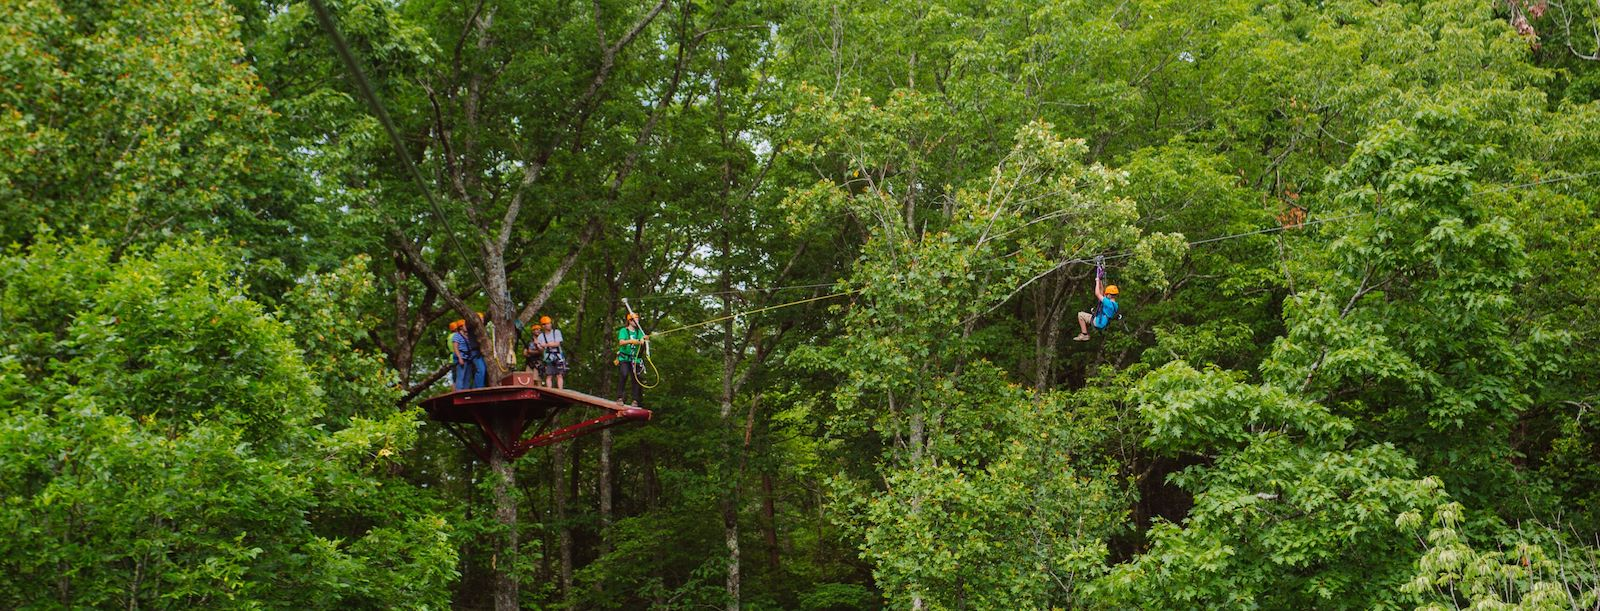 4 Benefits of the Braking System on Our Ziplines in the Smoky Mountains